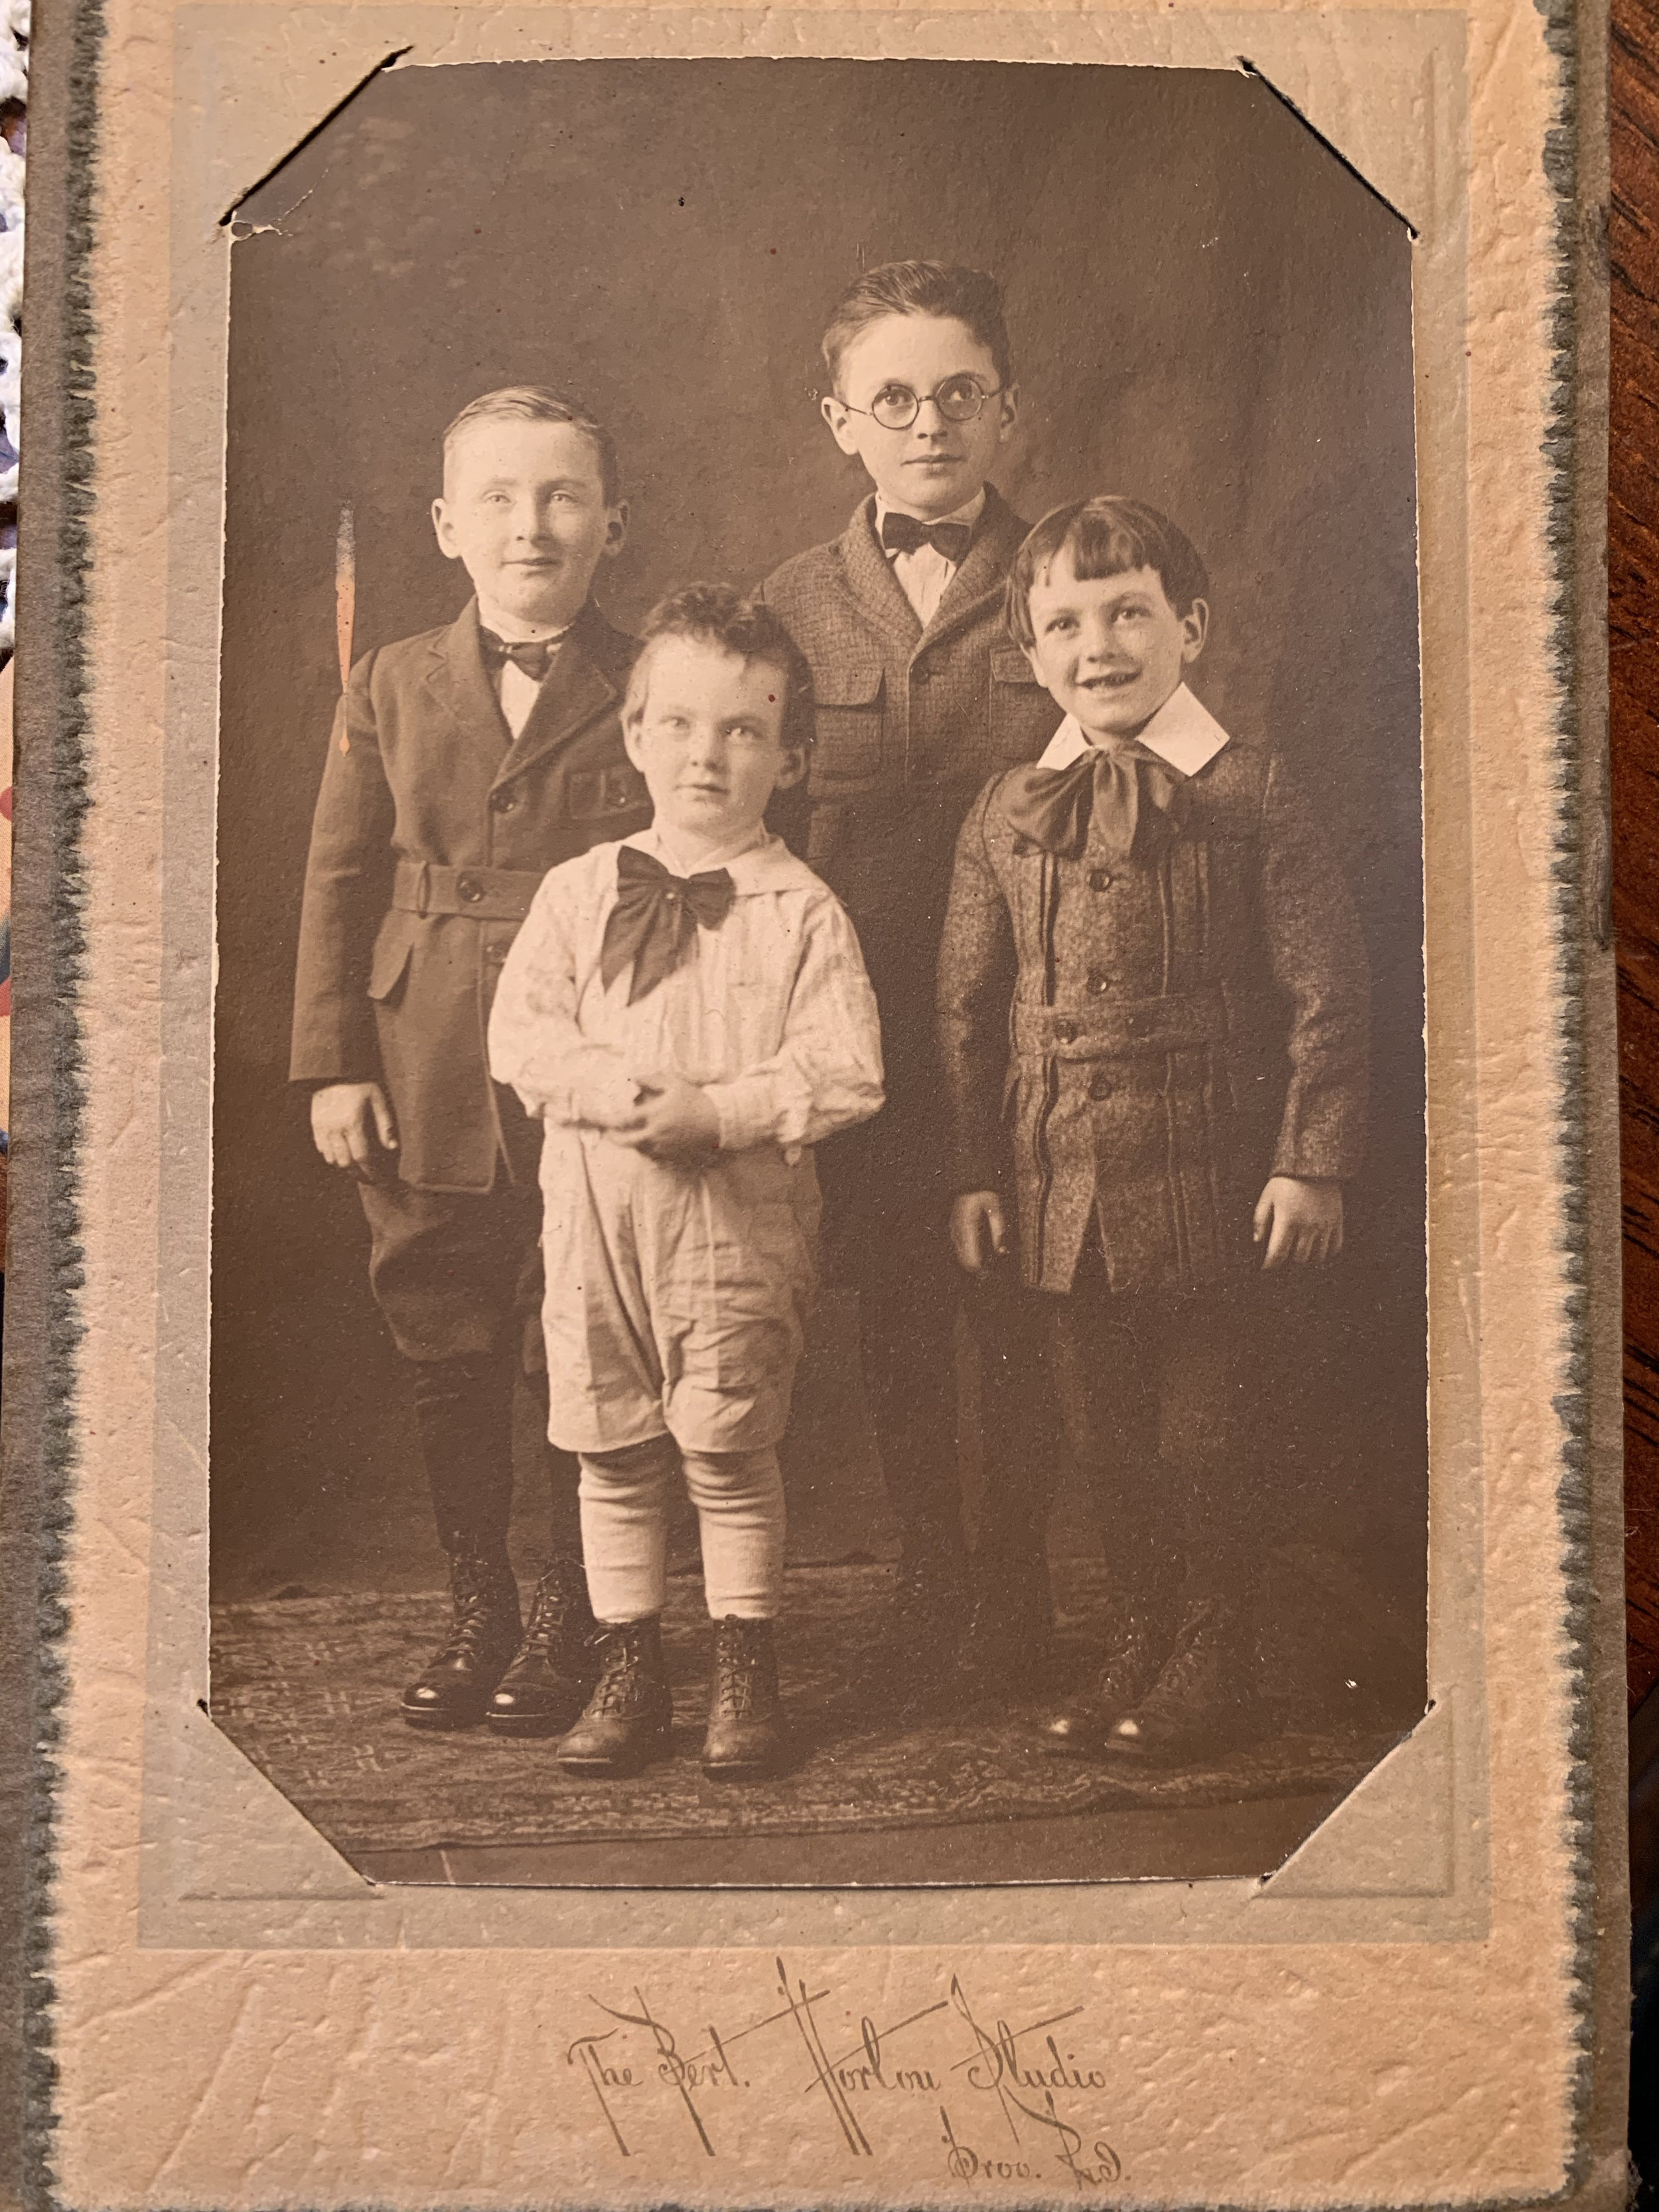 antique image of four young boys taken in Providence, RI